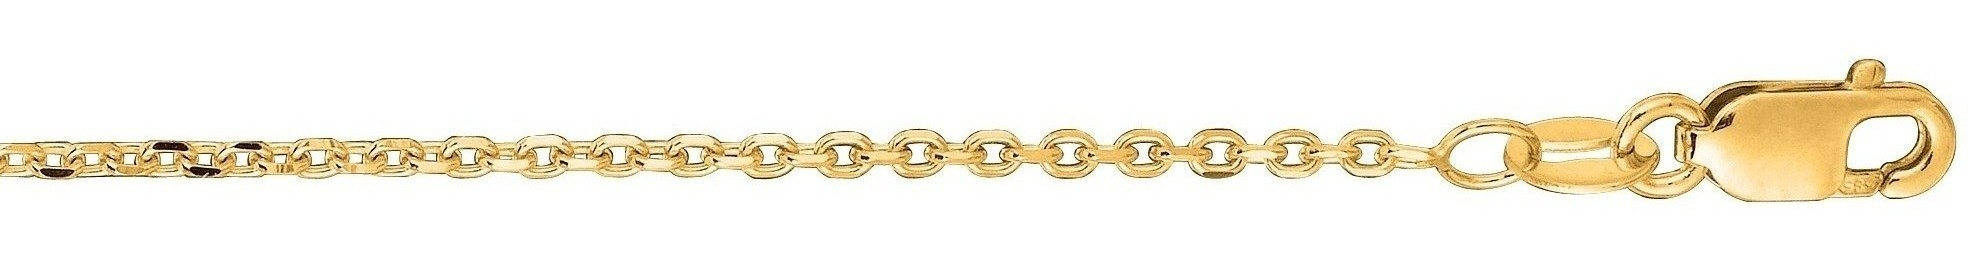 "20"" 14K Yellow Gold 1.4mm (0.06"") Polished Diamond Cut Cable Link Chain w/ Lobster Clasp"